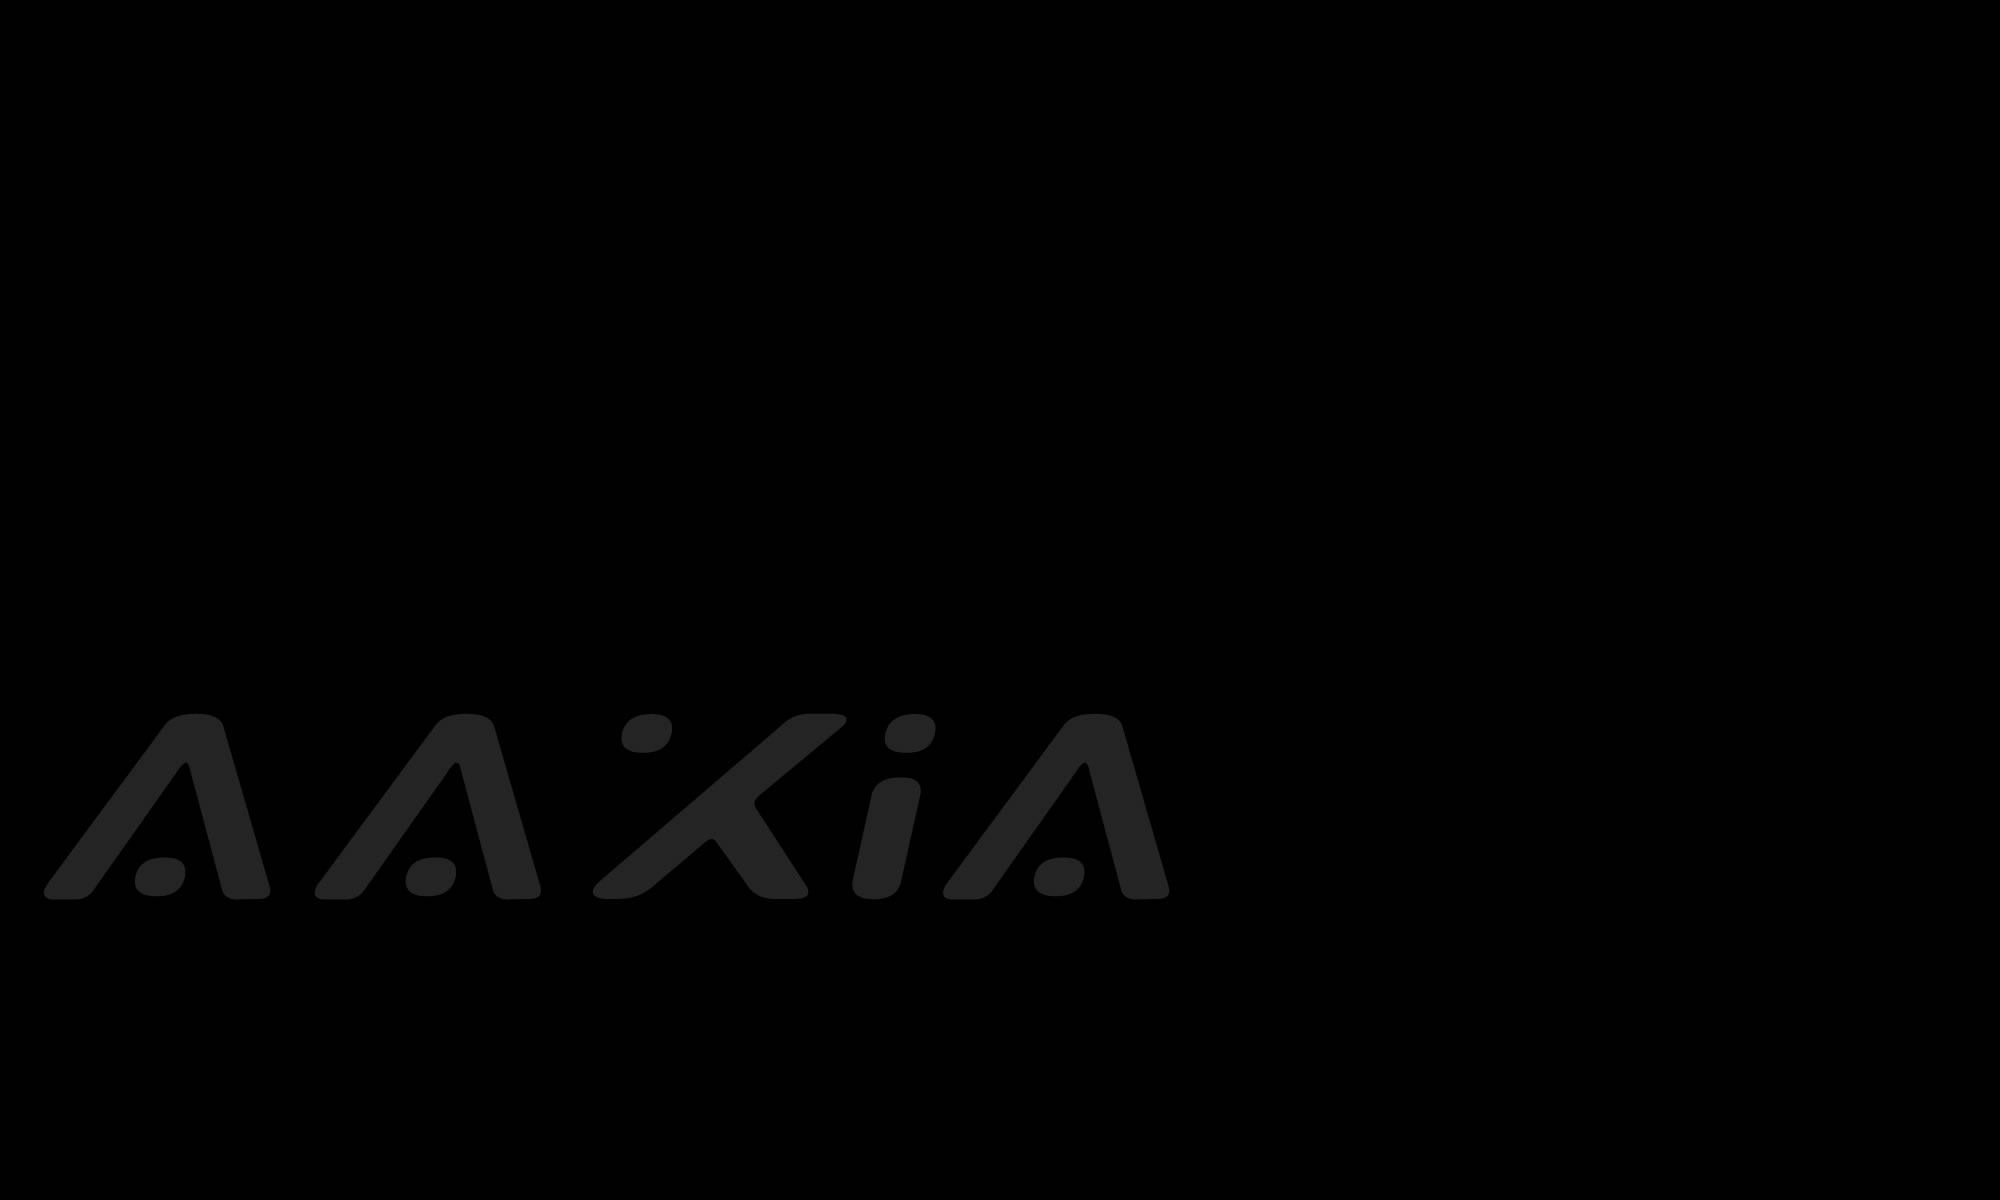 aa/Xia interactive : Internet development, marketing, SEO